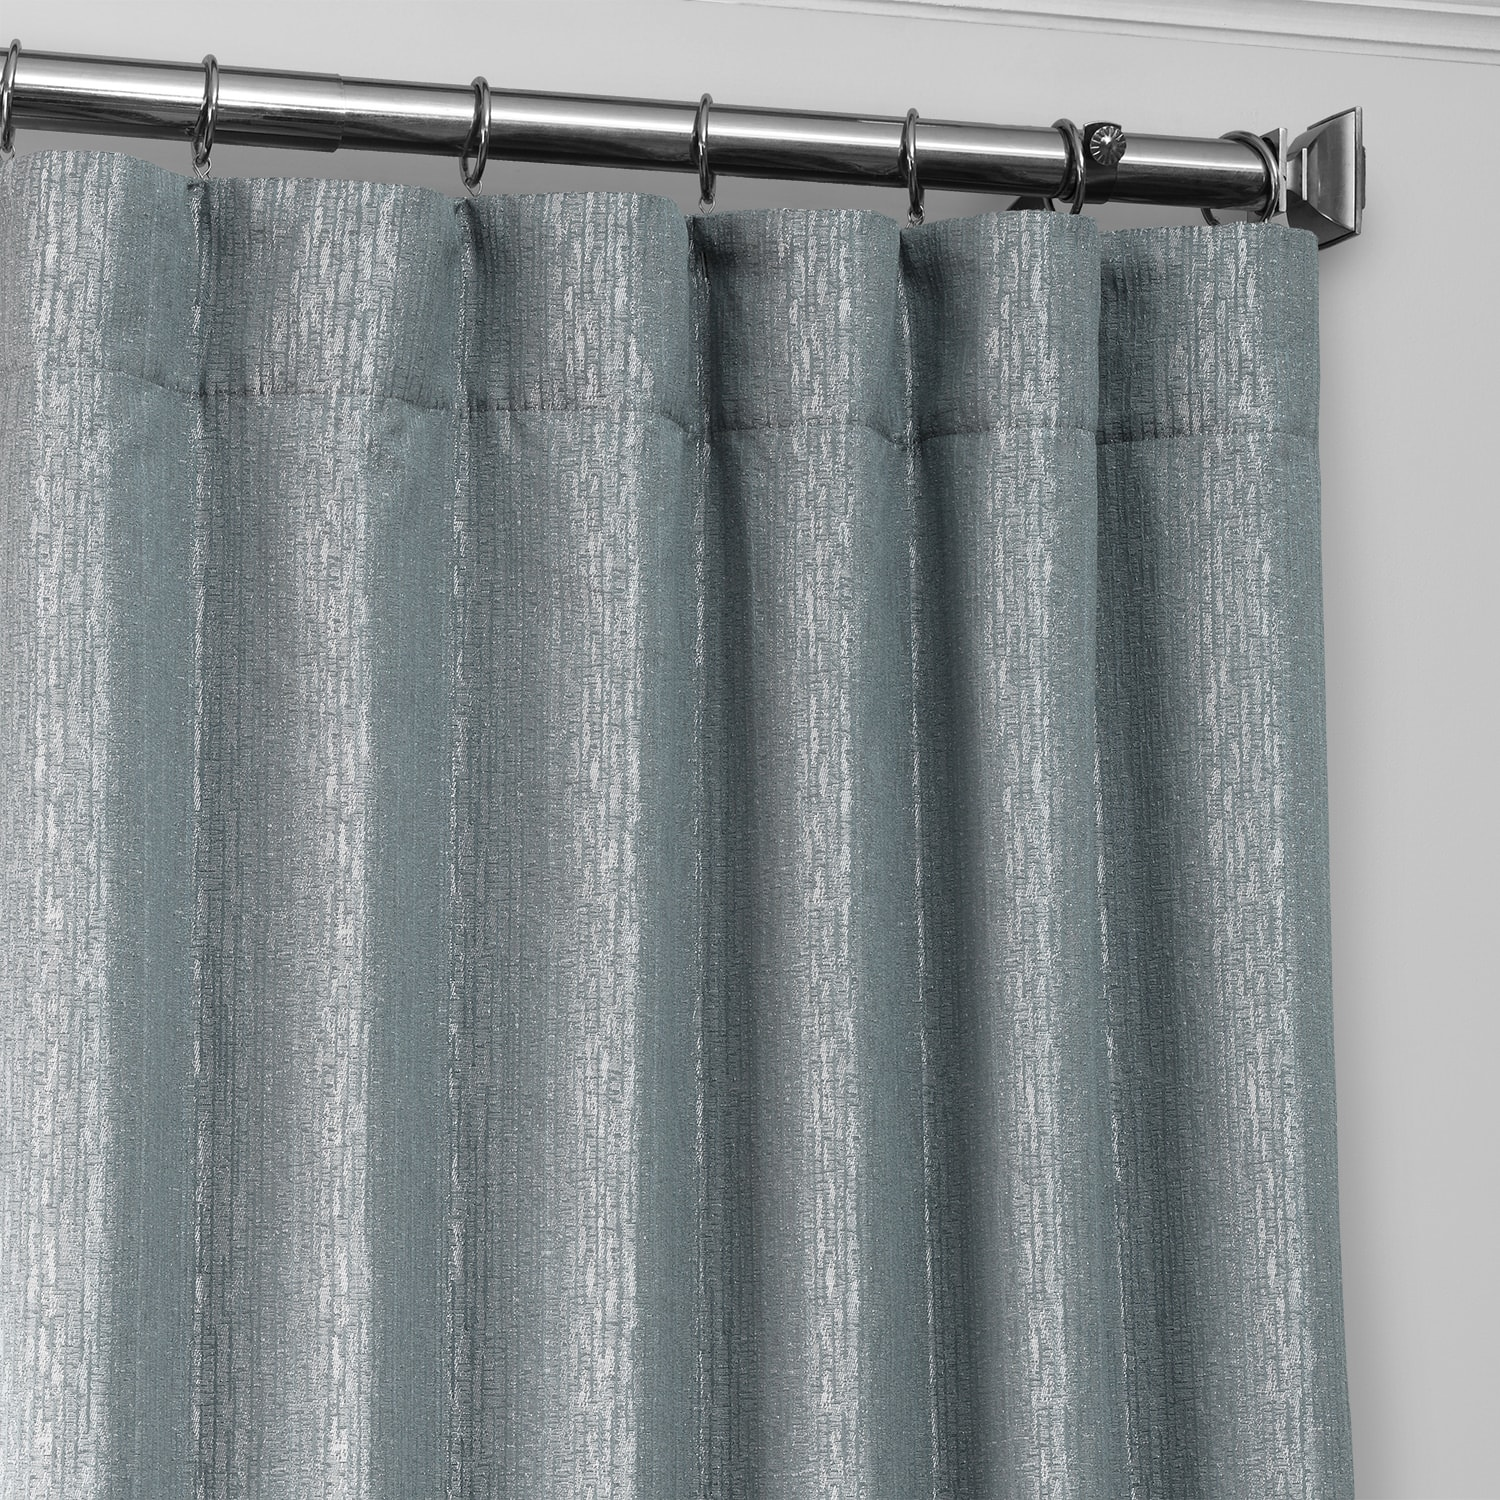 Birchwood Blue Designer Jacquard Curtain